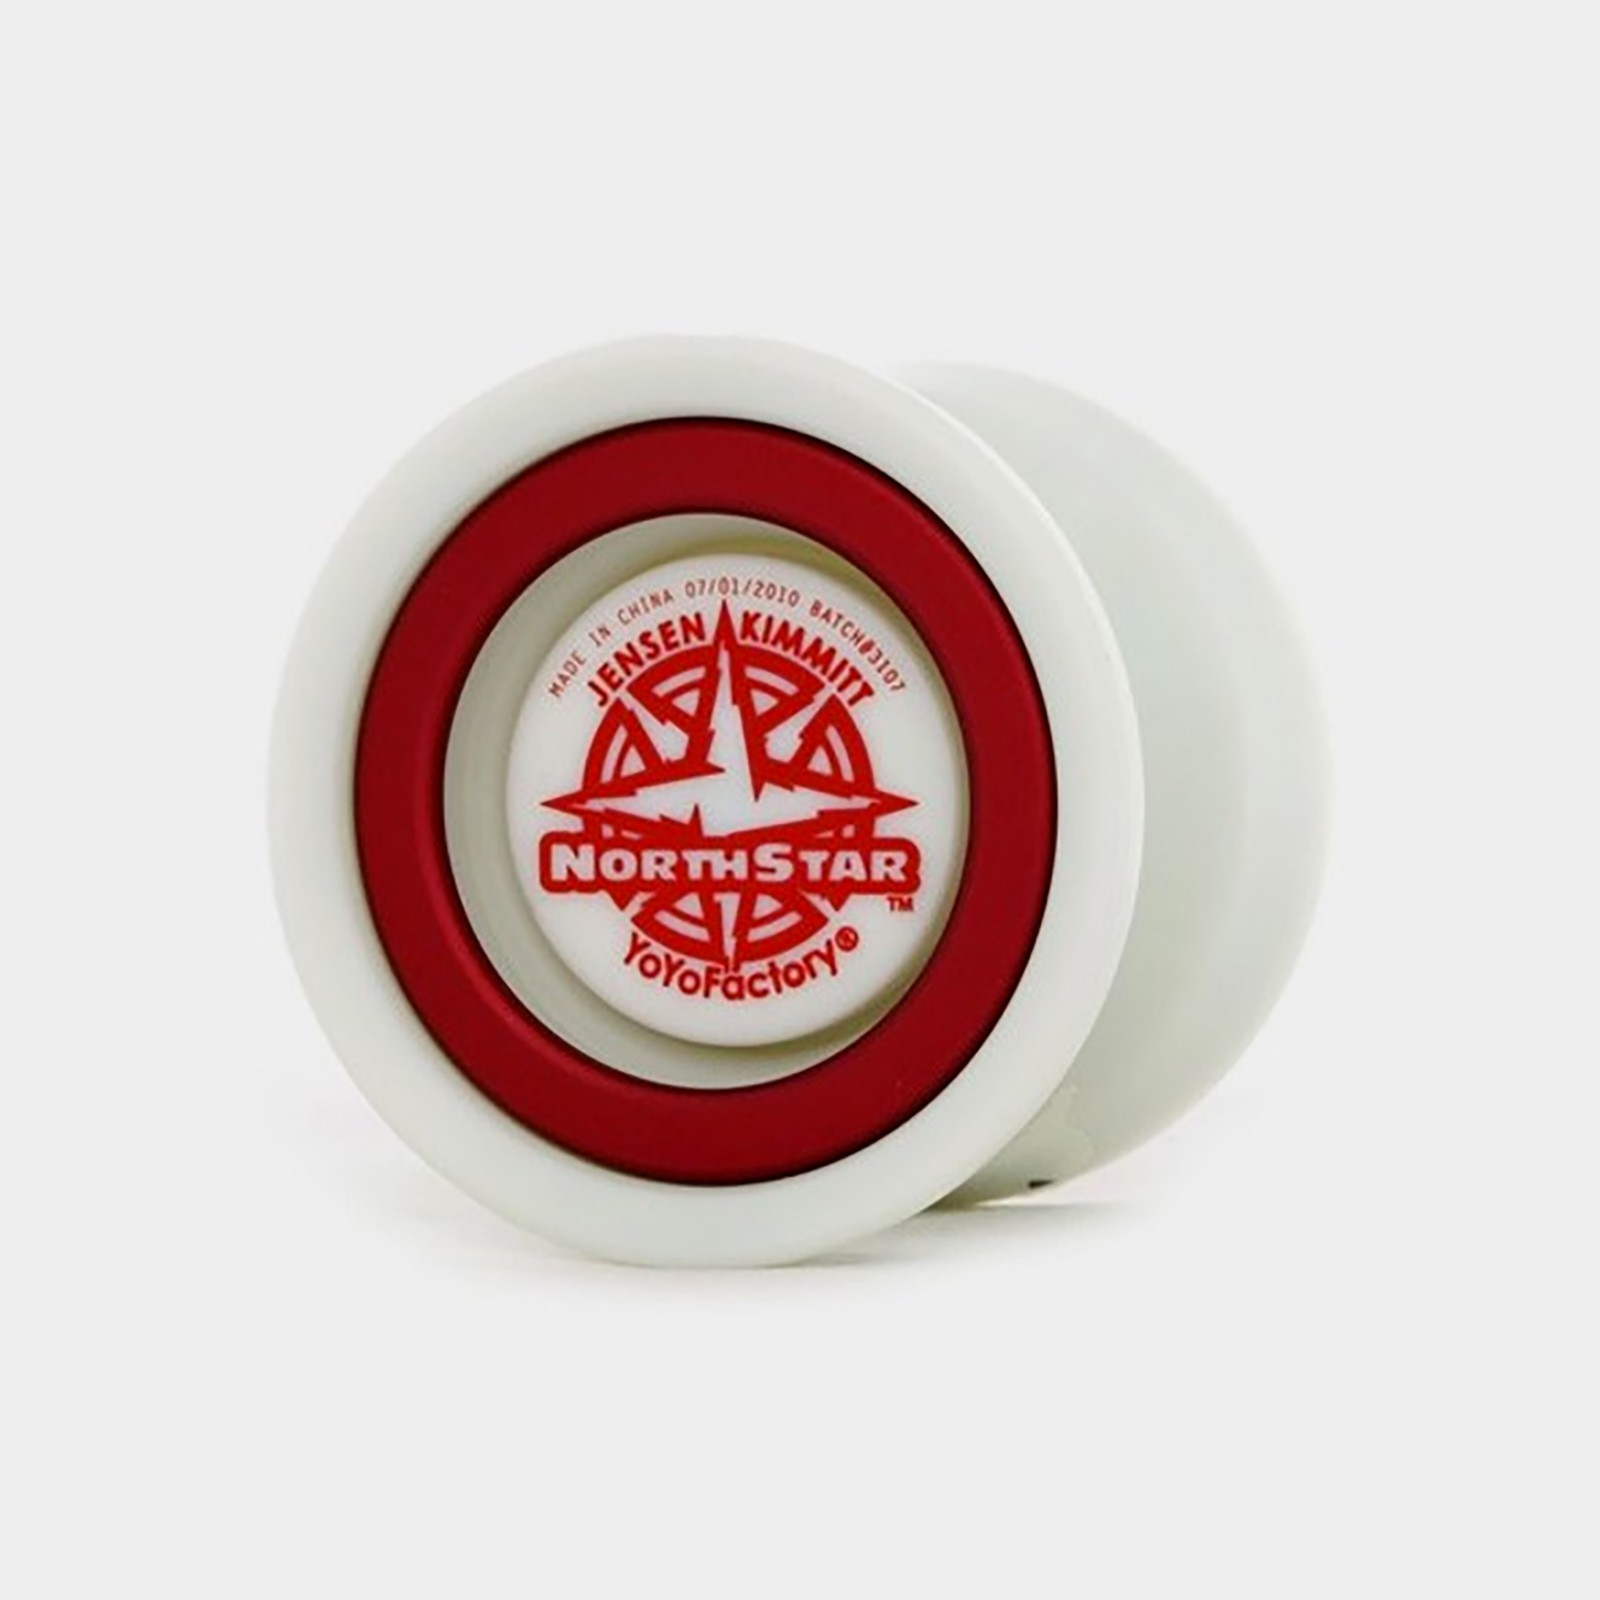 Northstar (Old) yo-yo in White by YoYoFactory